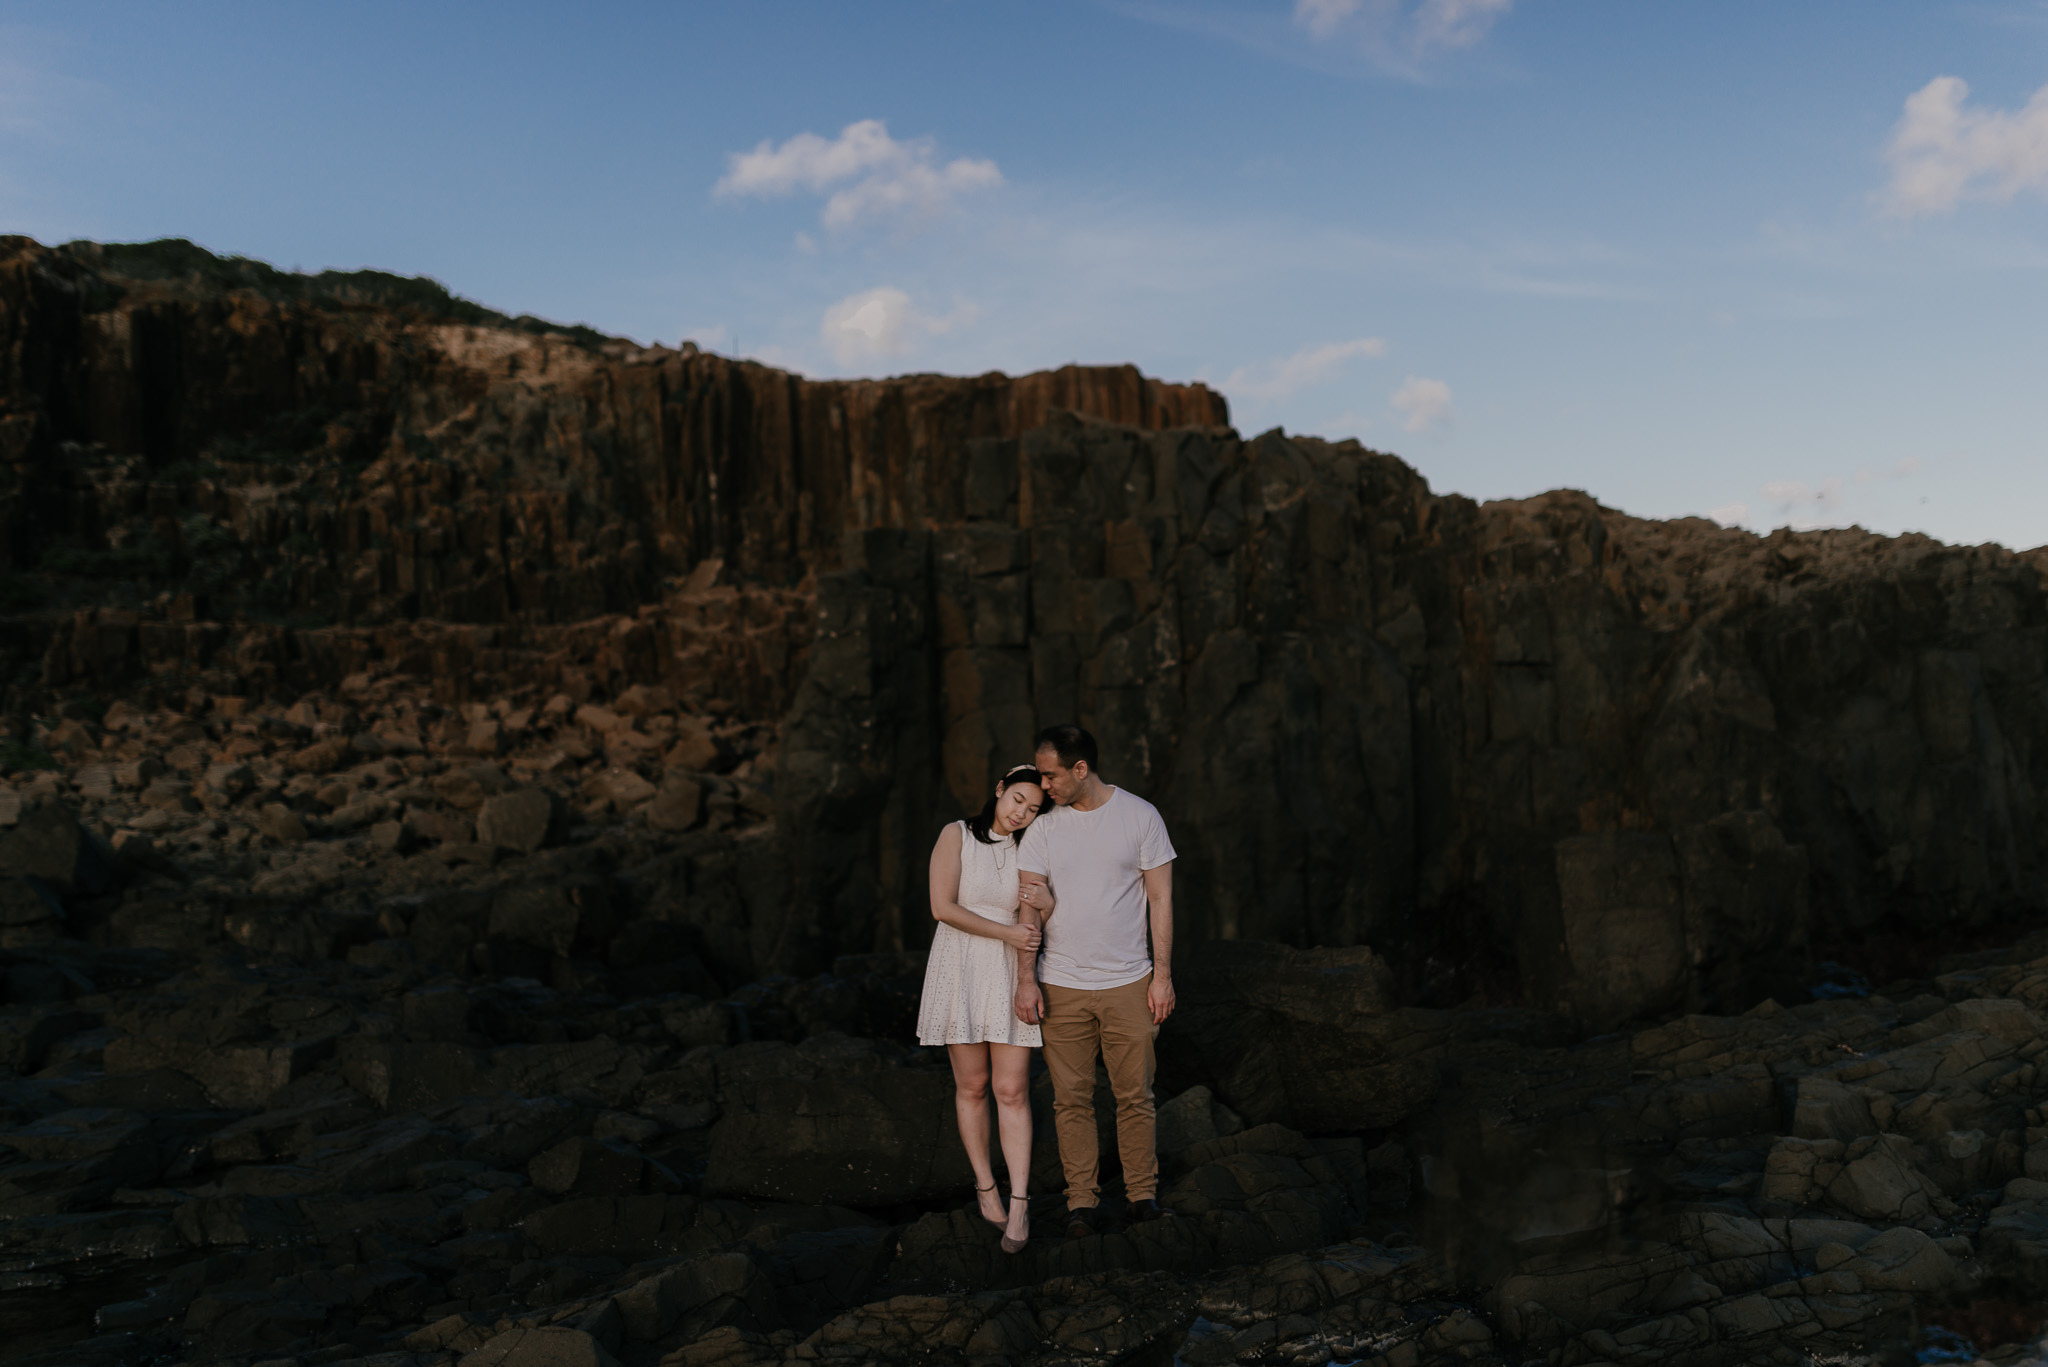 S+A_engagement_bombo-quarry-123.JPG